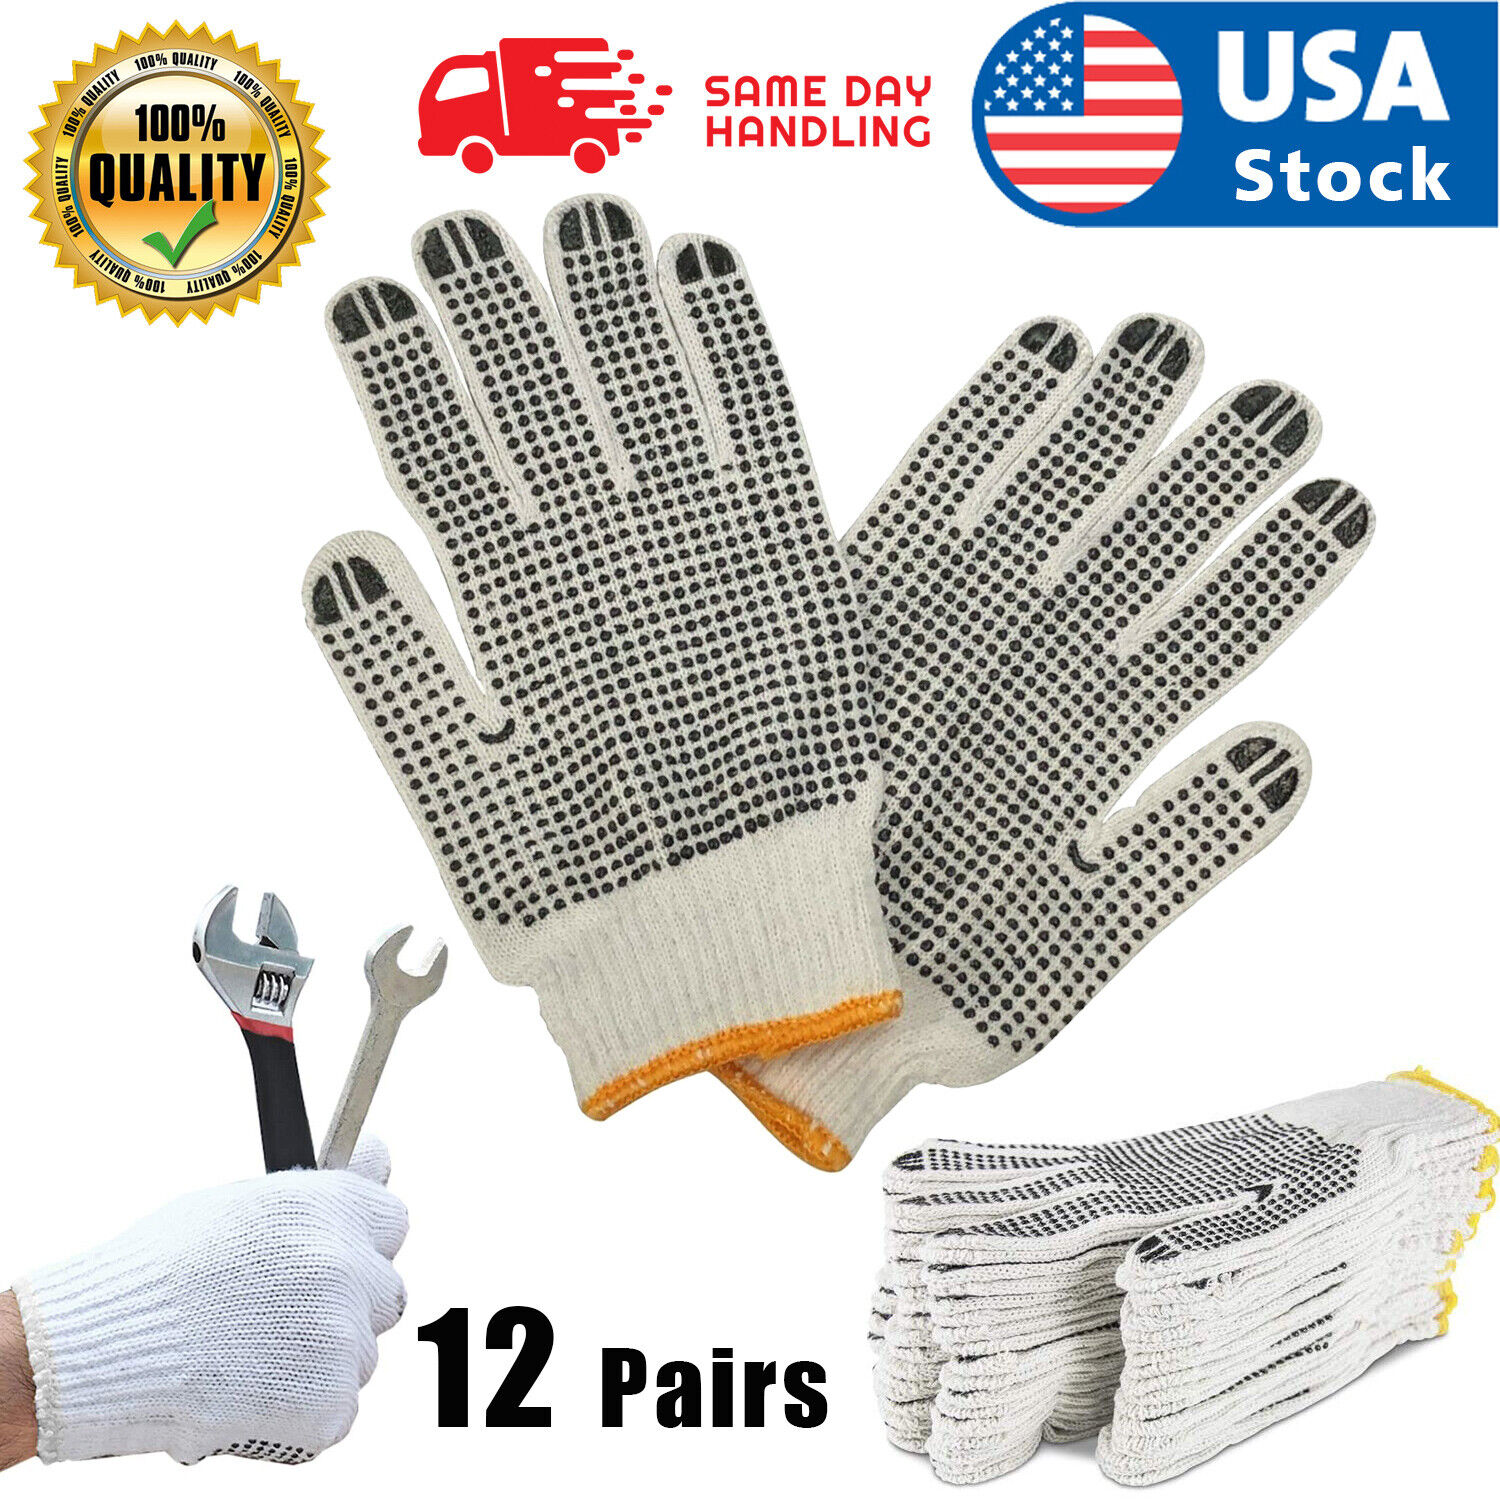 12 PAIRS WHITE POLY COTTON STRING KNIT WORK SAFETY GLOVES Nylon Glove Business & Industrial